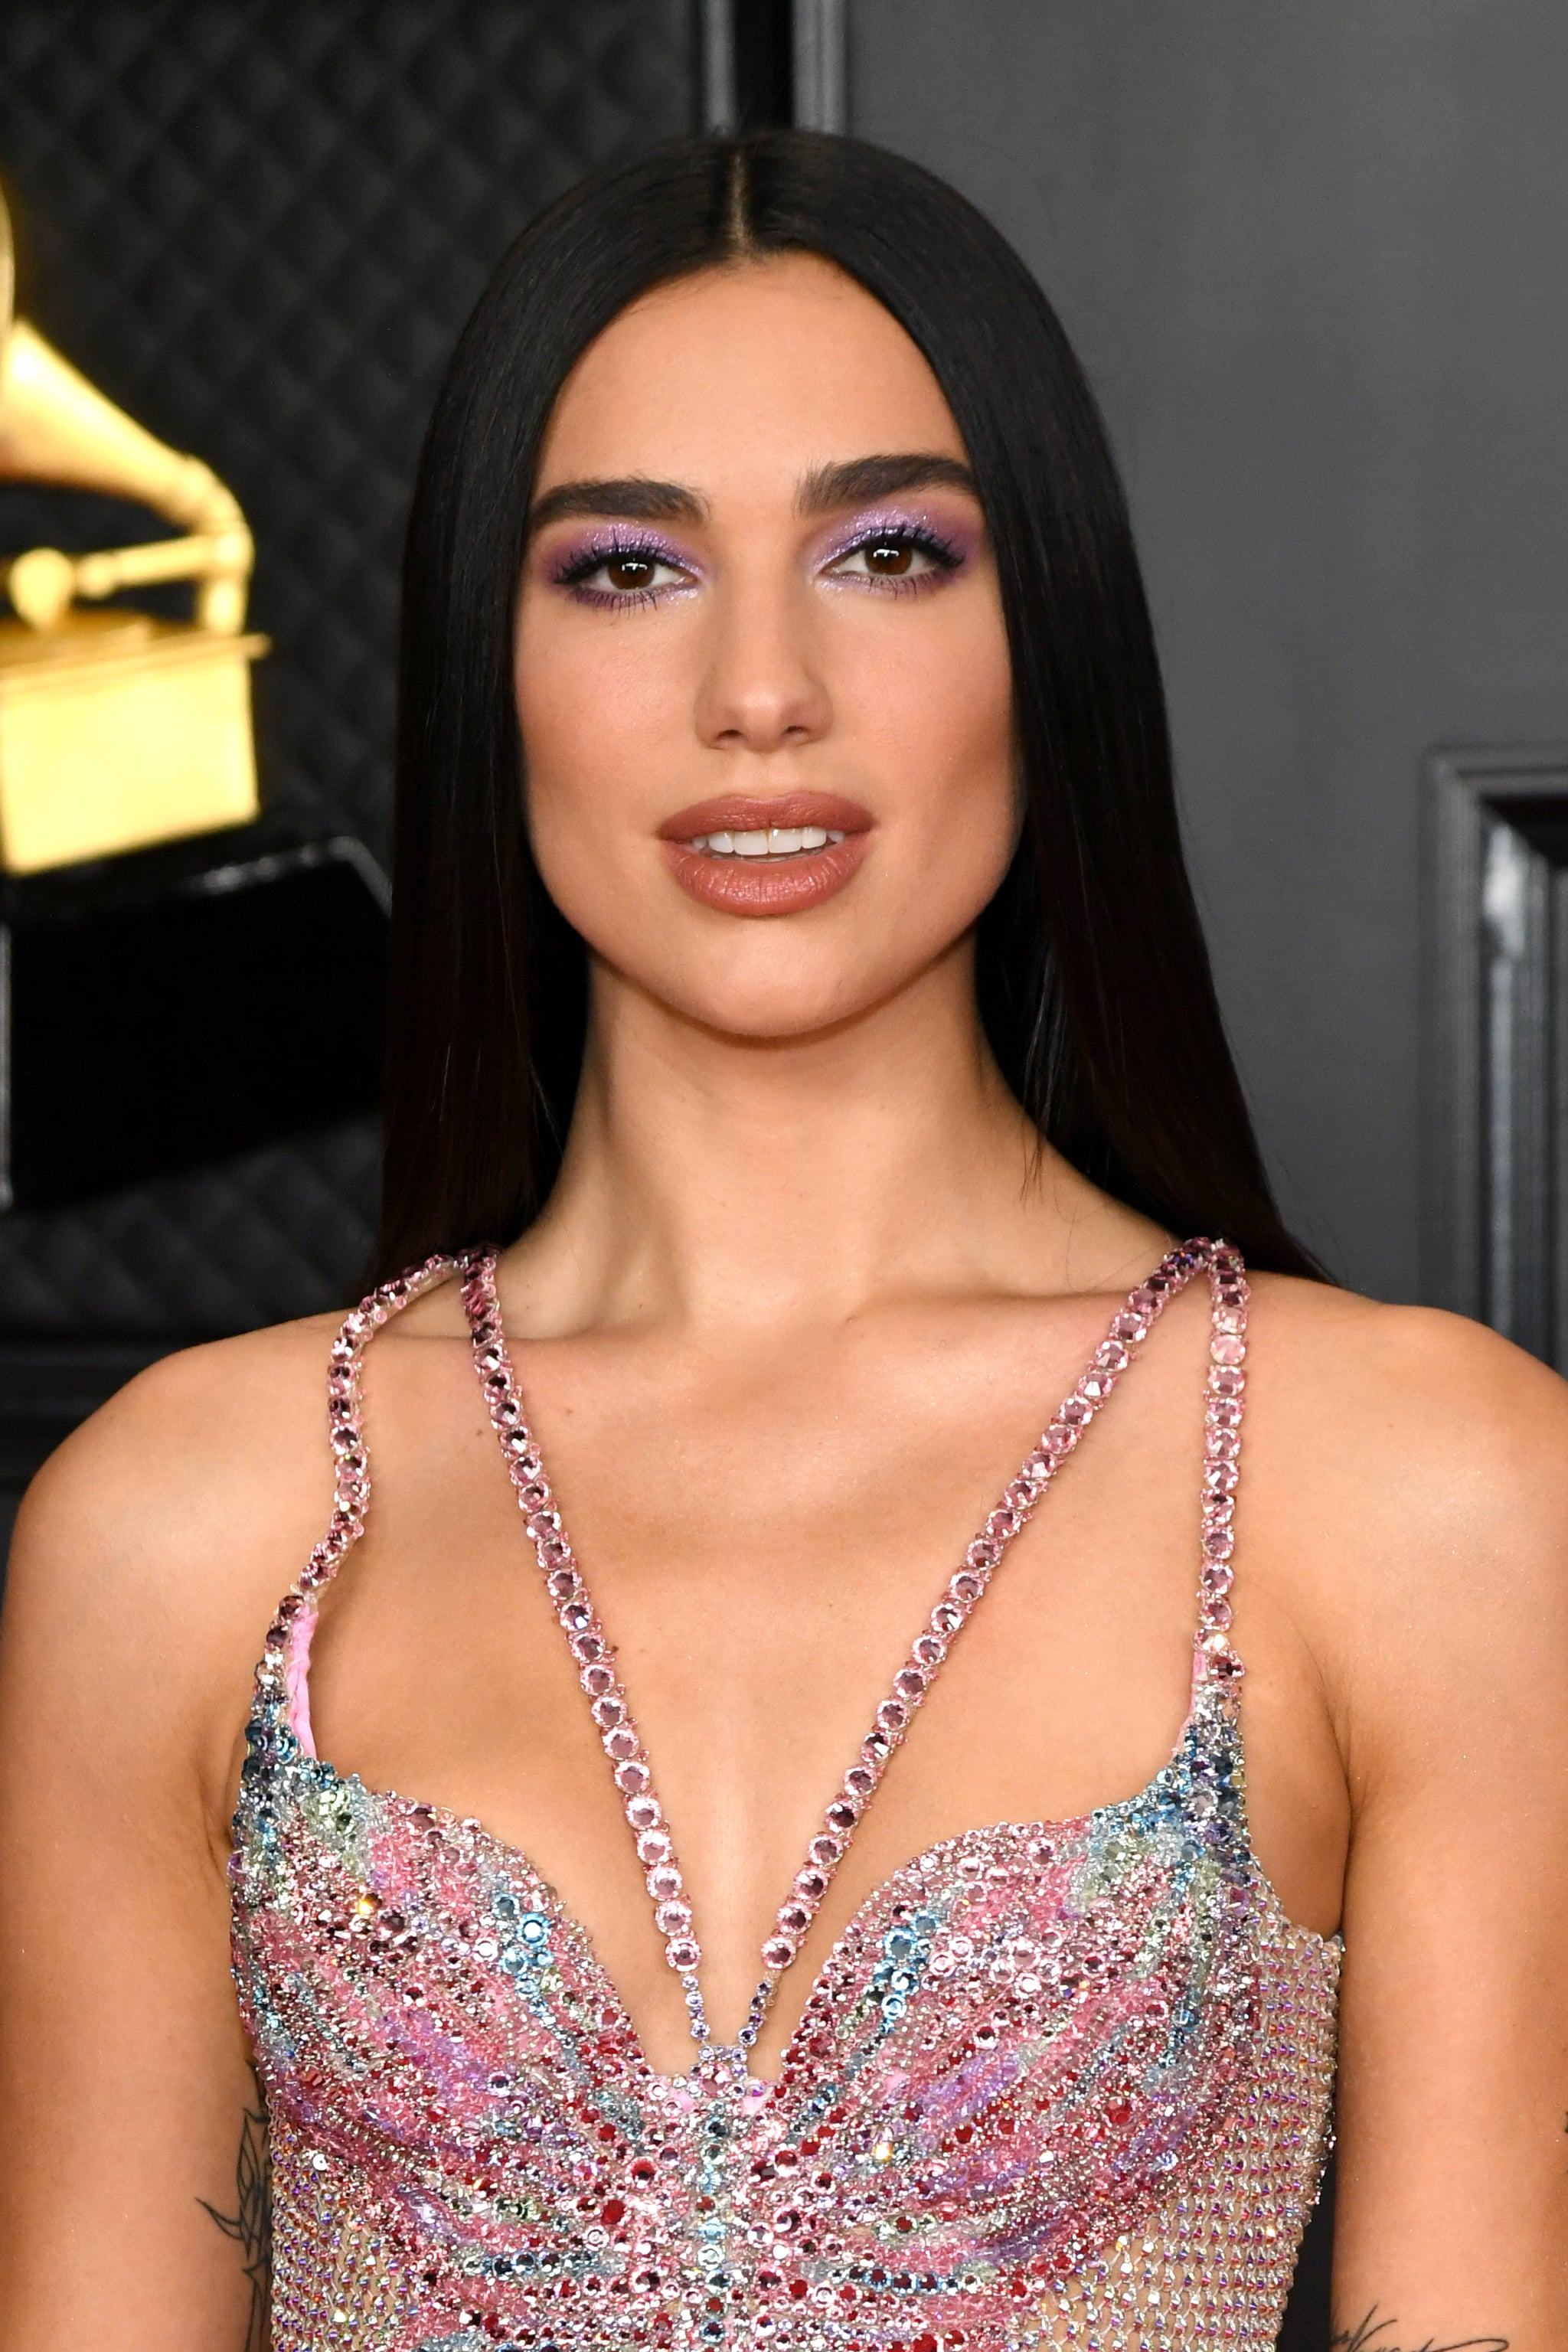 LOS ANGELES, CALIFORNIA - MARCH 14: Dua Lipa attends the 63rd Annual GRAMMY Awards at Los Angeles Convention Centre on March 14, 2021 in Los Angeles, California. (Photo by Kevin Mazur/Getty Images for The Recording Academy )